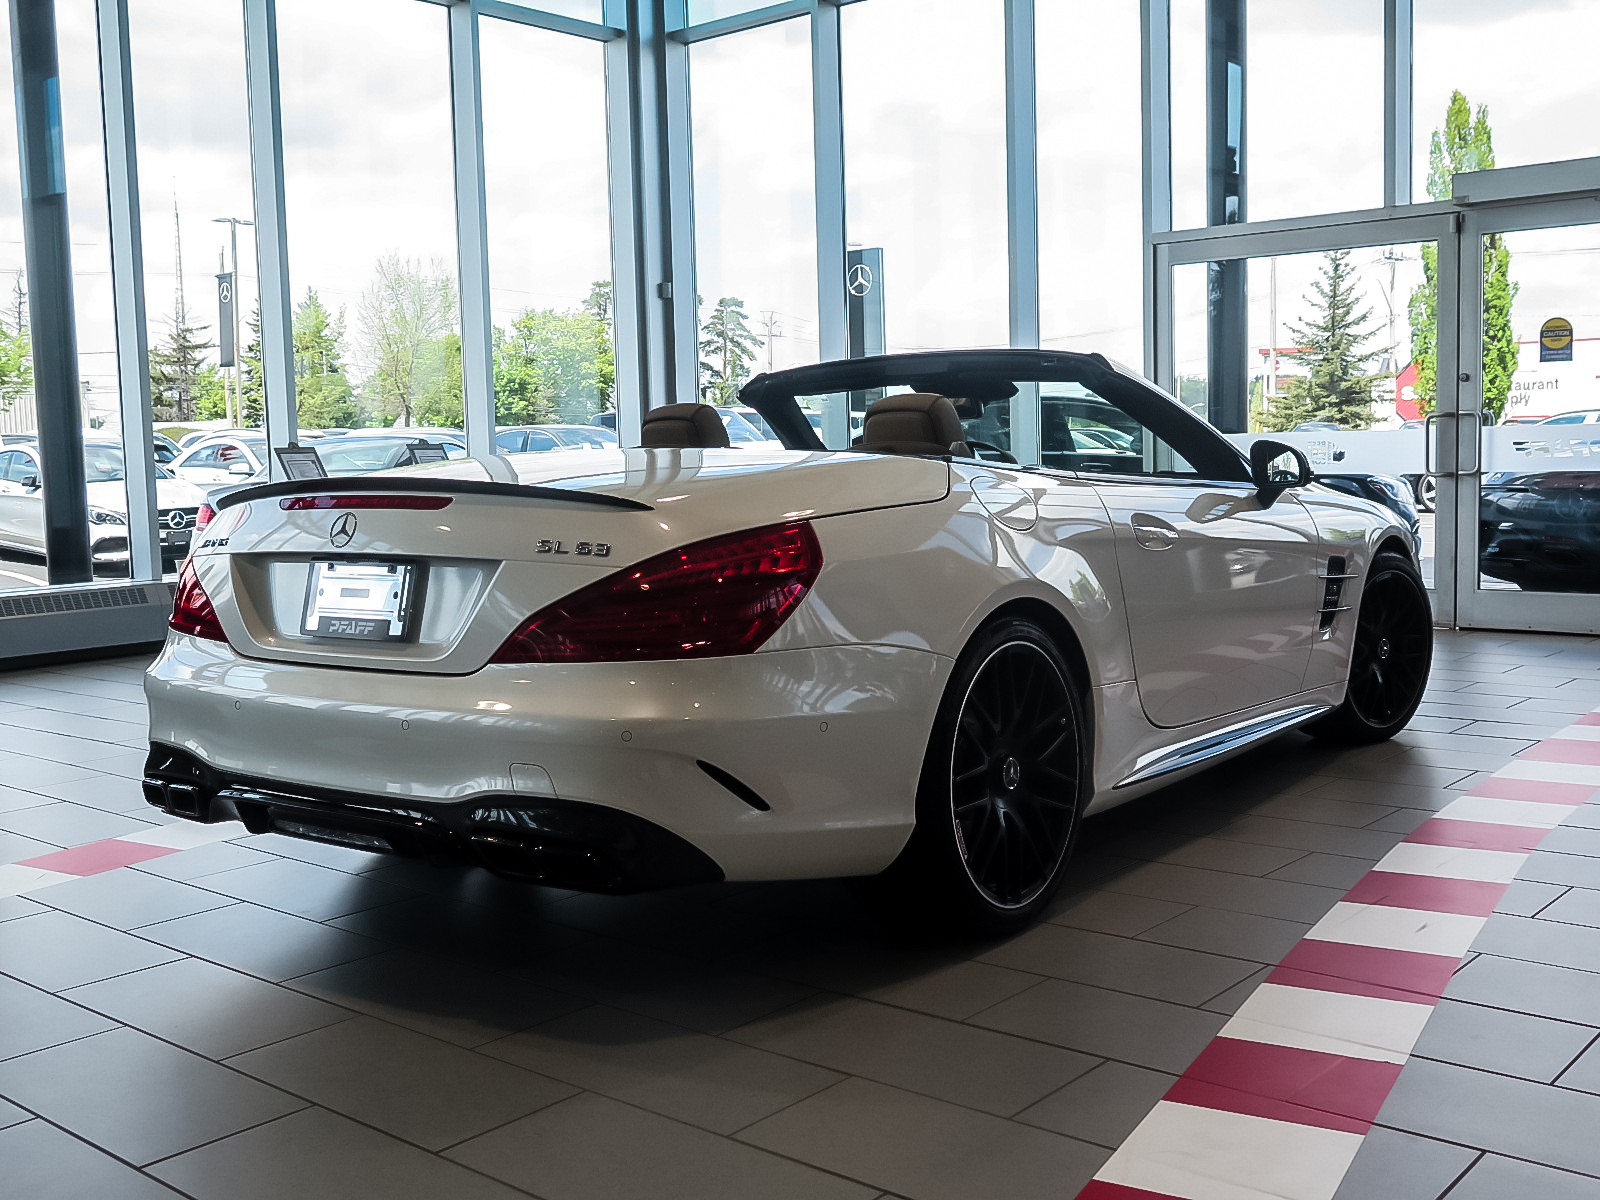 New 2019 Mercedes-Benz SL63 AMG Roadster